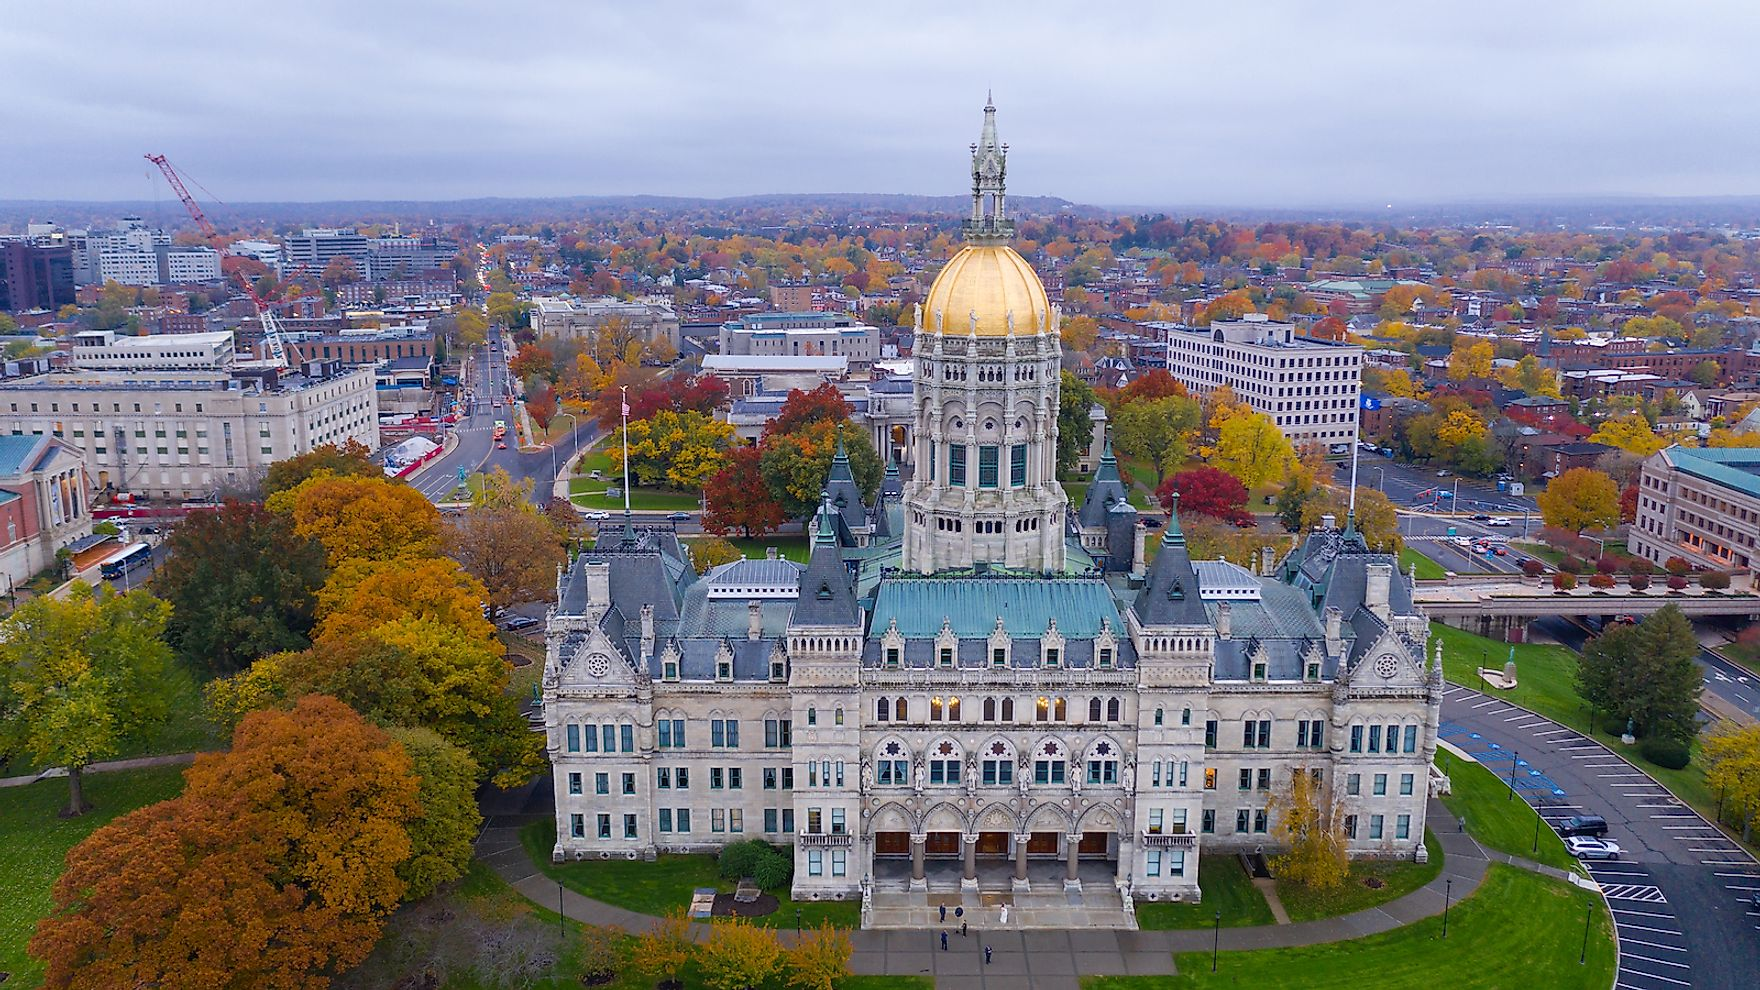 An aerial view focusing on the Connecticut State House with blazing fall color in the trees around Hartford.